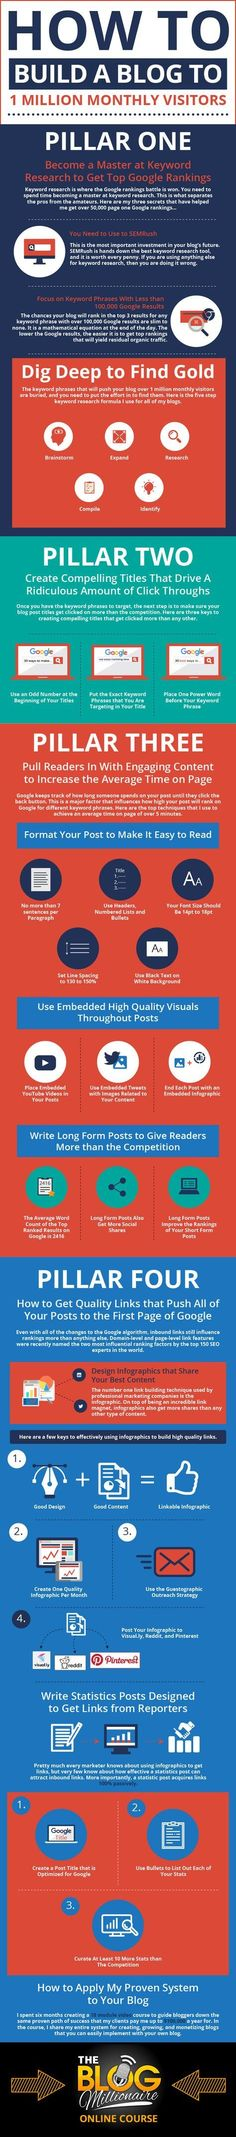 How To Build A Blog To 1 Million Monthly Visitors - #infographic